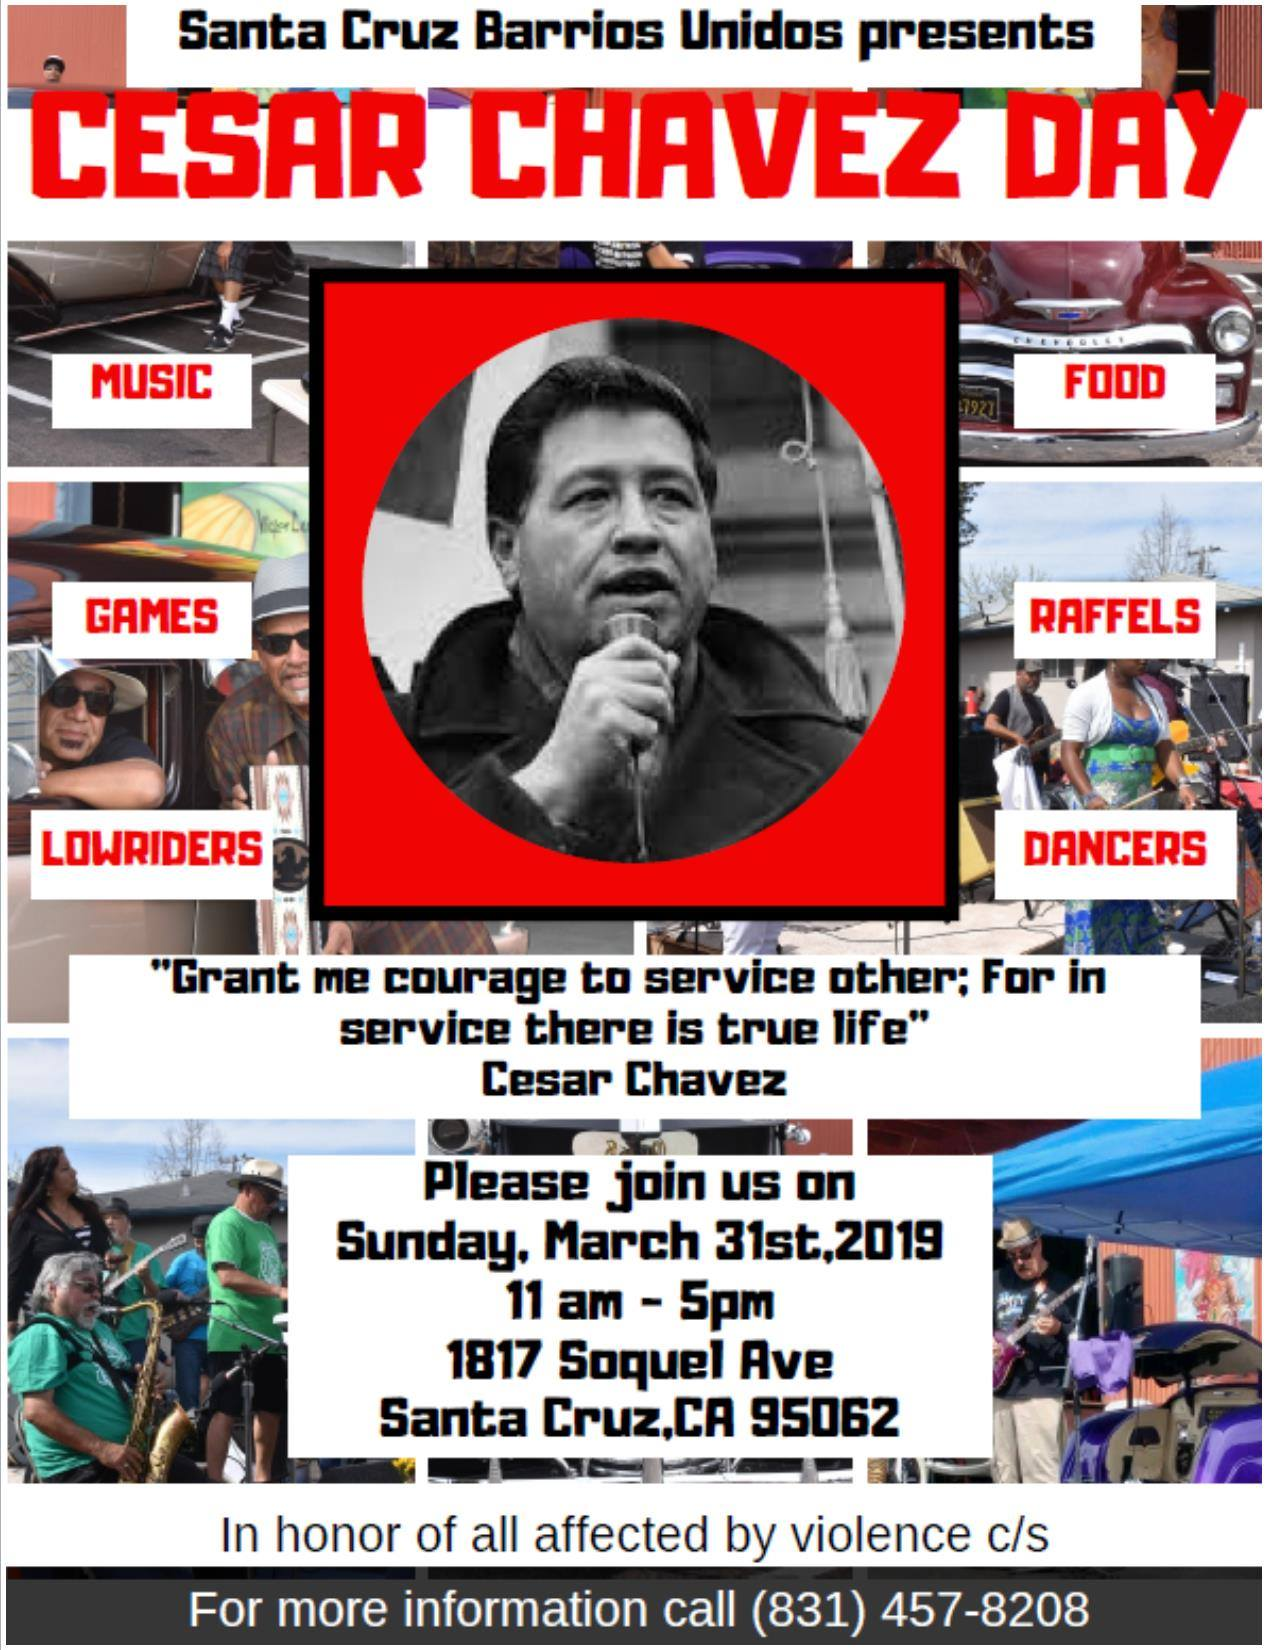 SUN.MAR.31 – CESAR CHAVEZ DAY @ BARRIOS UNIDOS – SANTA CRUZ, CA